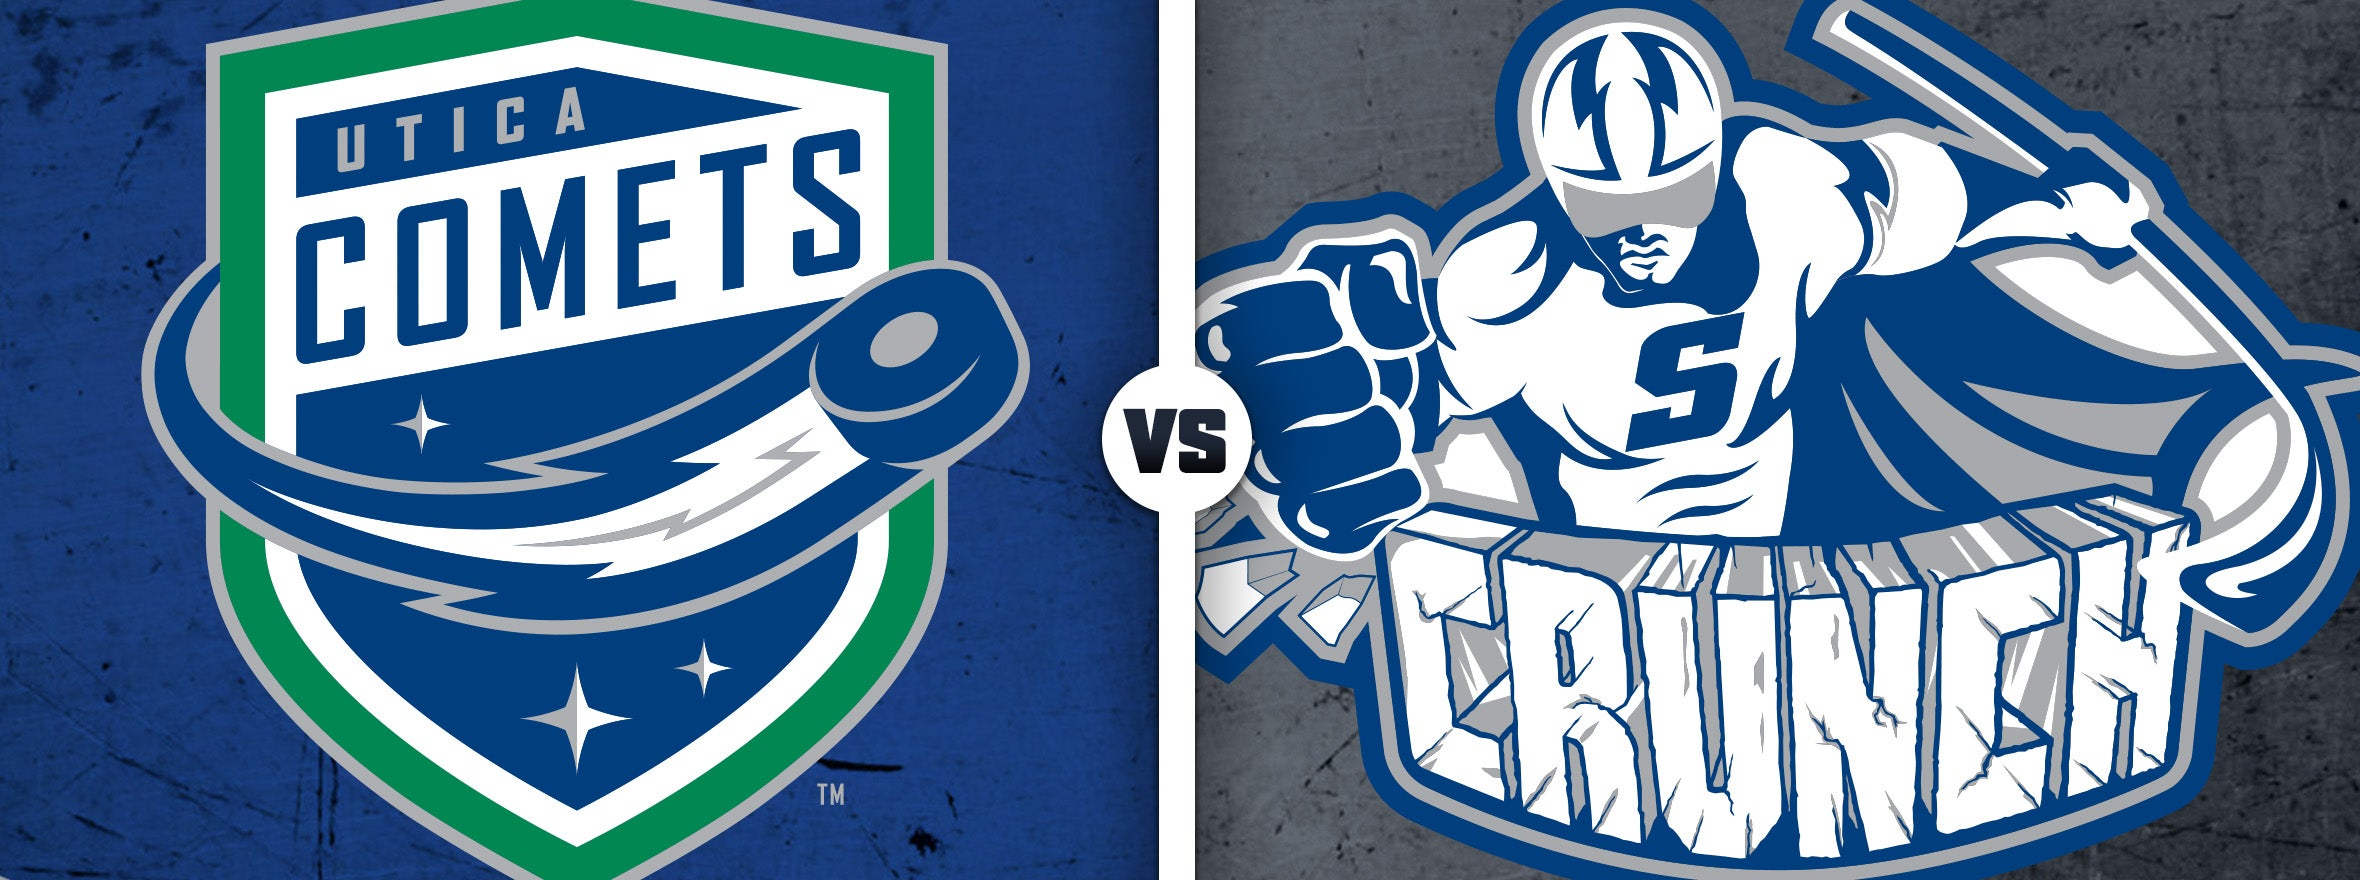 COMETS HEAD BACK TO SYRACUSE SATURDAY